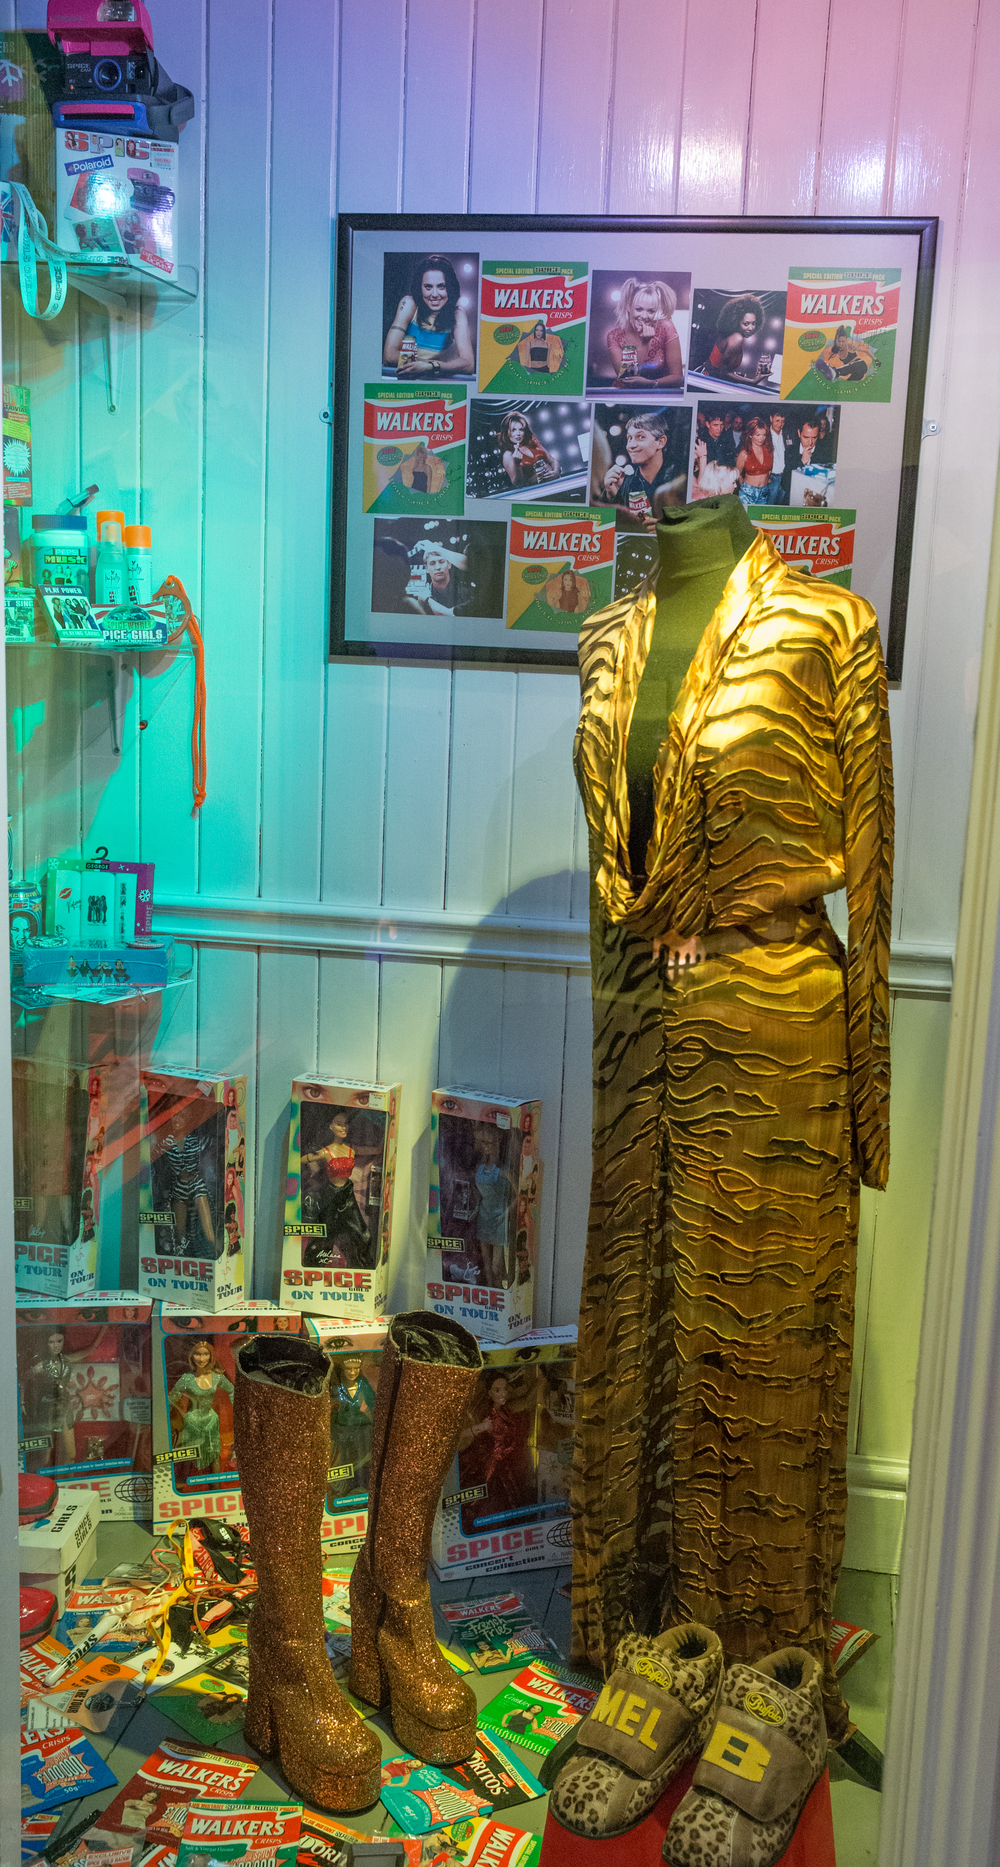 18. Spice Girls Exhibition at Ripley's Blackpool. Photo Credit - Steve Lee, 2016.jpg